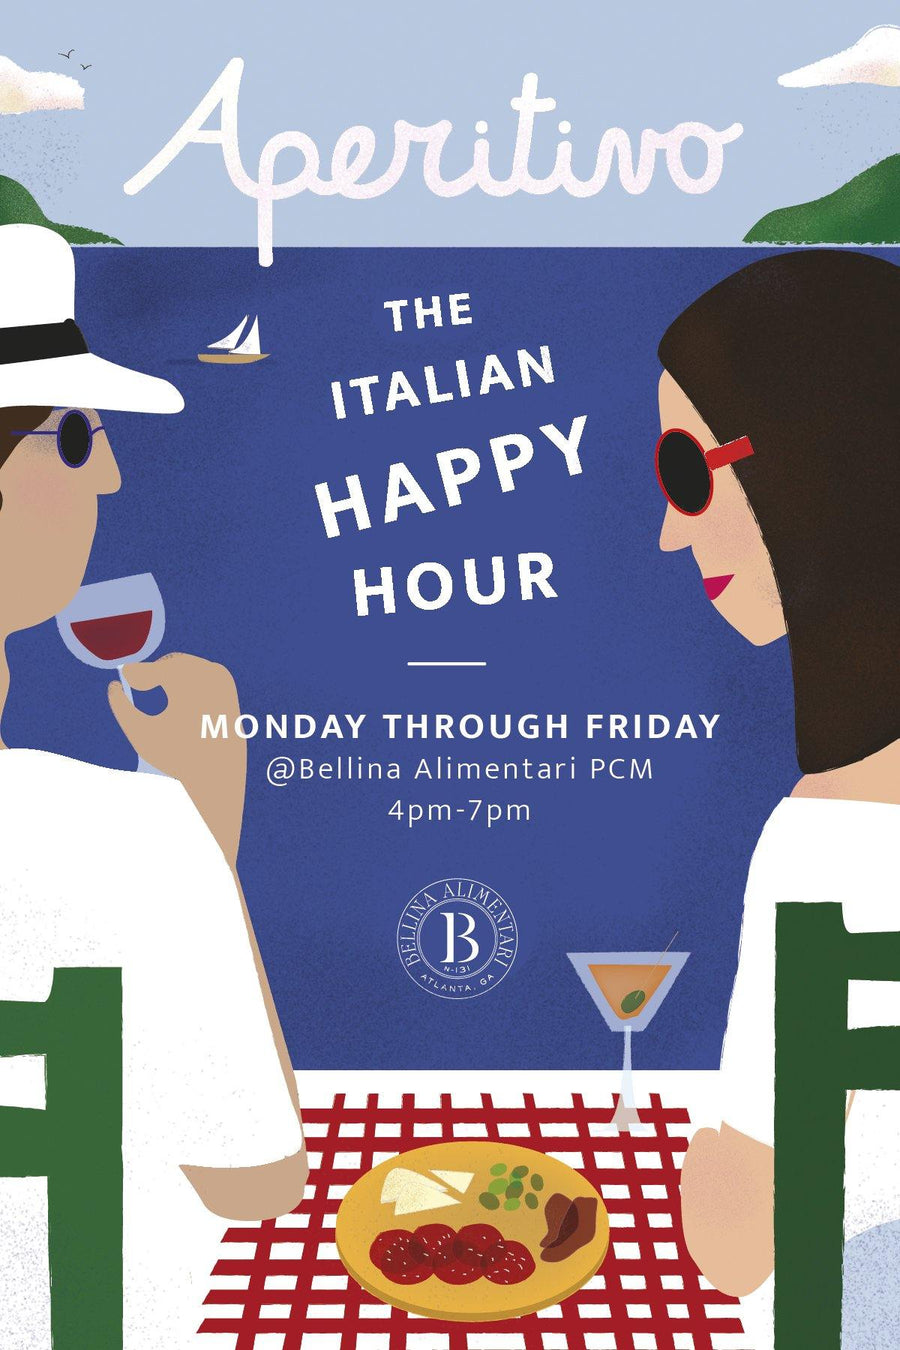 Aperitivo - The Italian Happy Hour